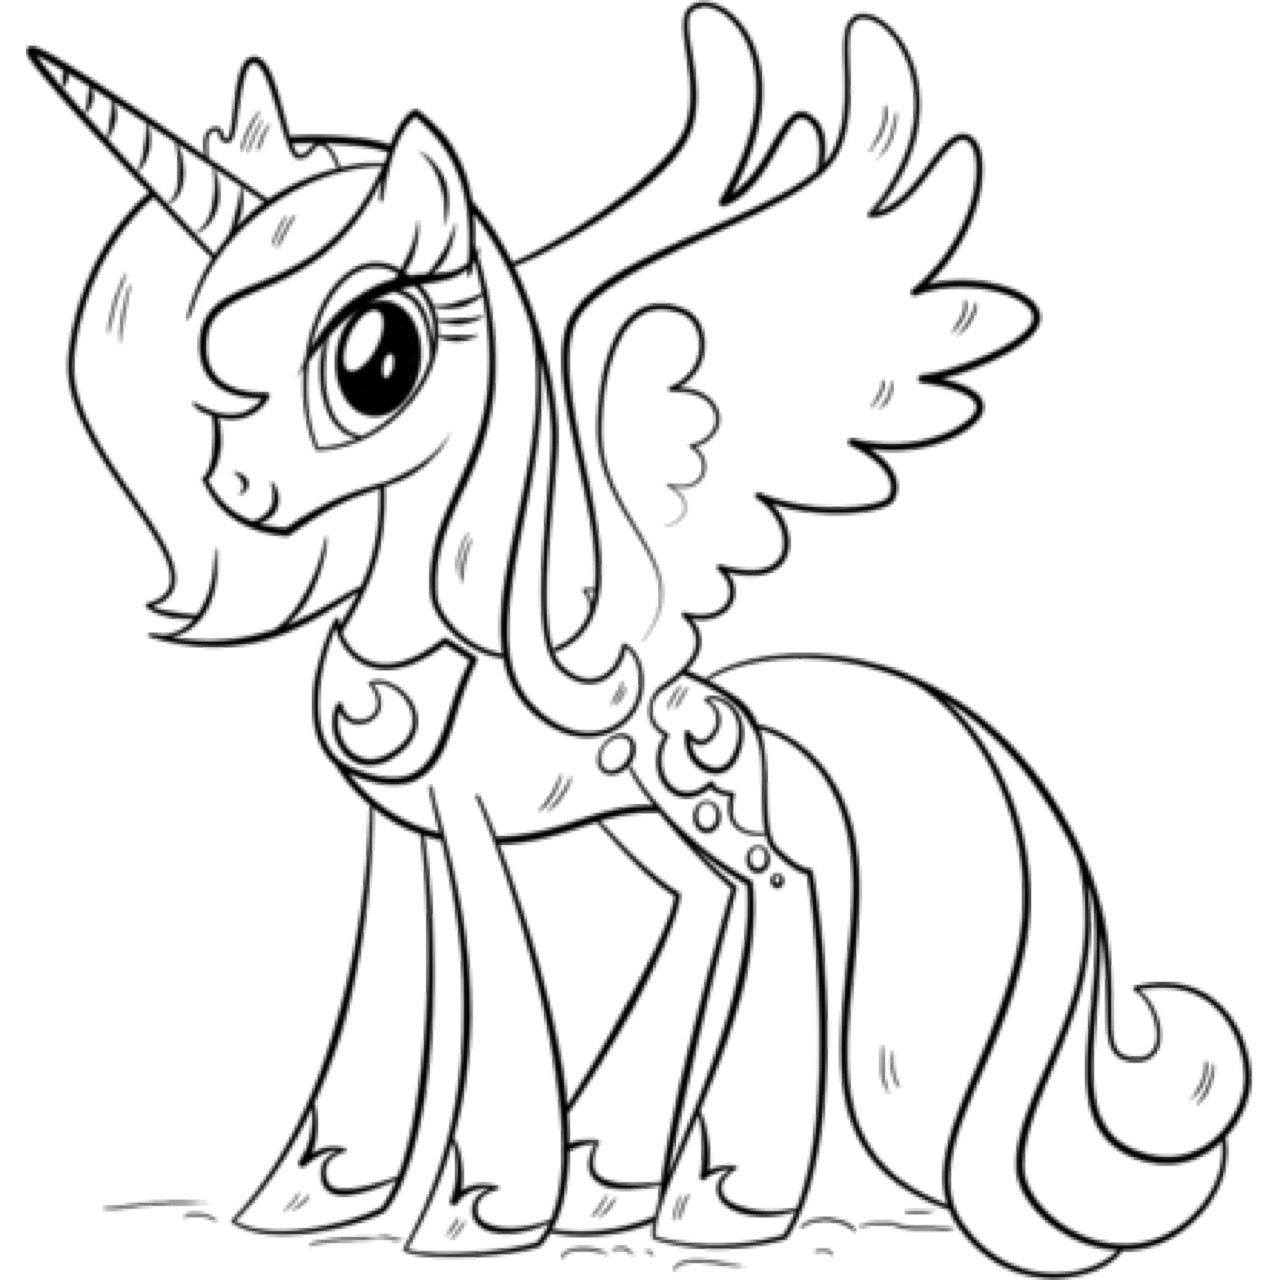 Pin by Deborah Keeton on Coloring pages Unicorn coloring